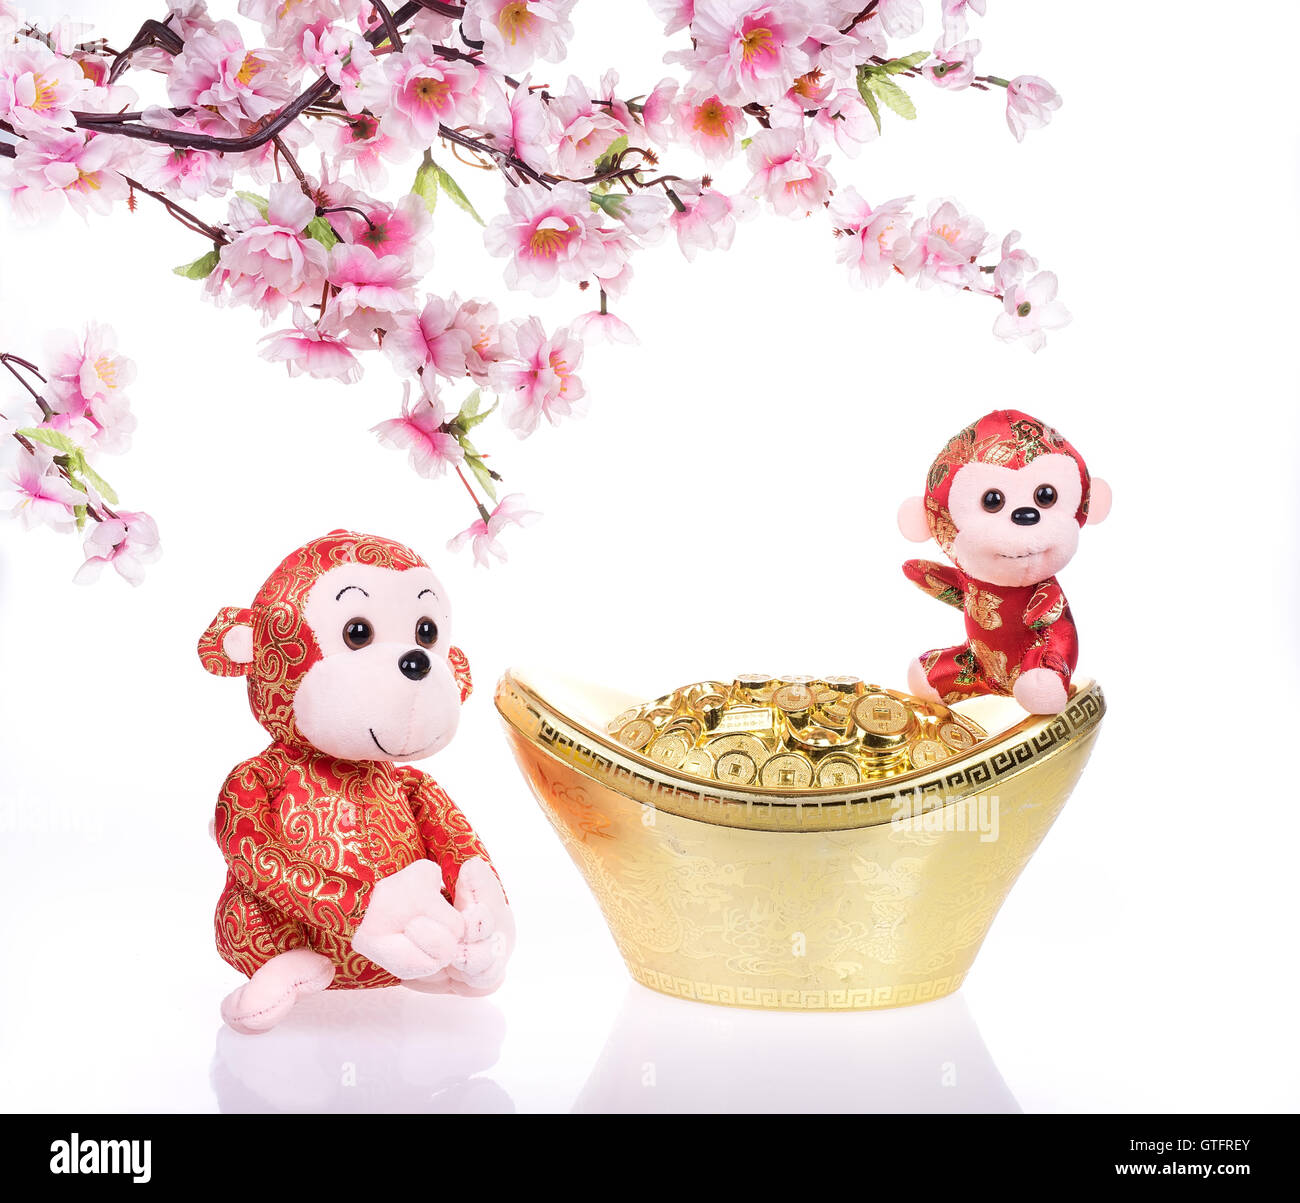 Words Product Chinese Stockfotos & Words Product Chinese Bilder - Alamy